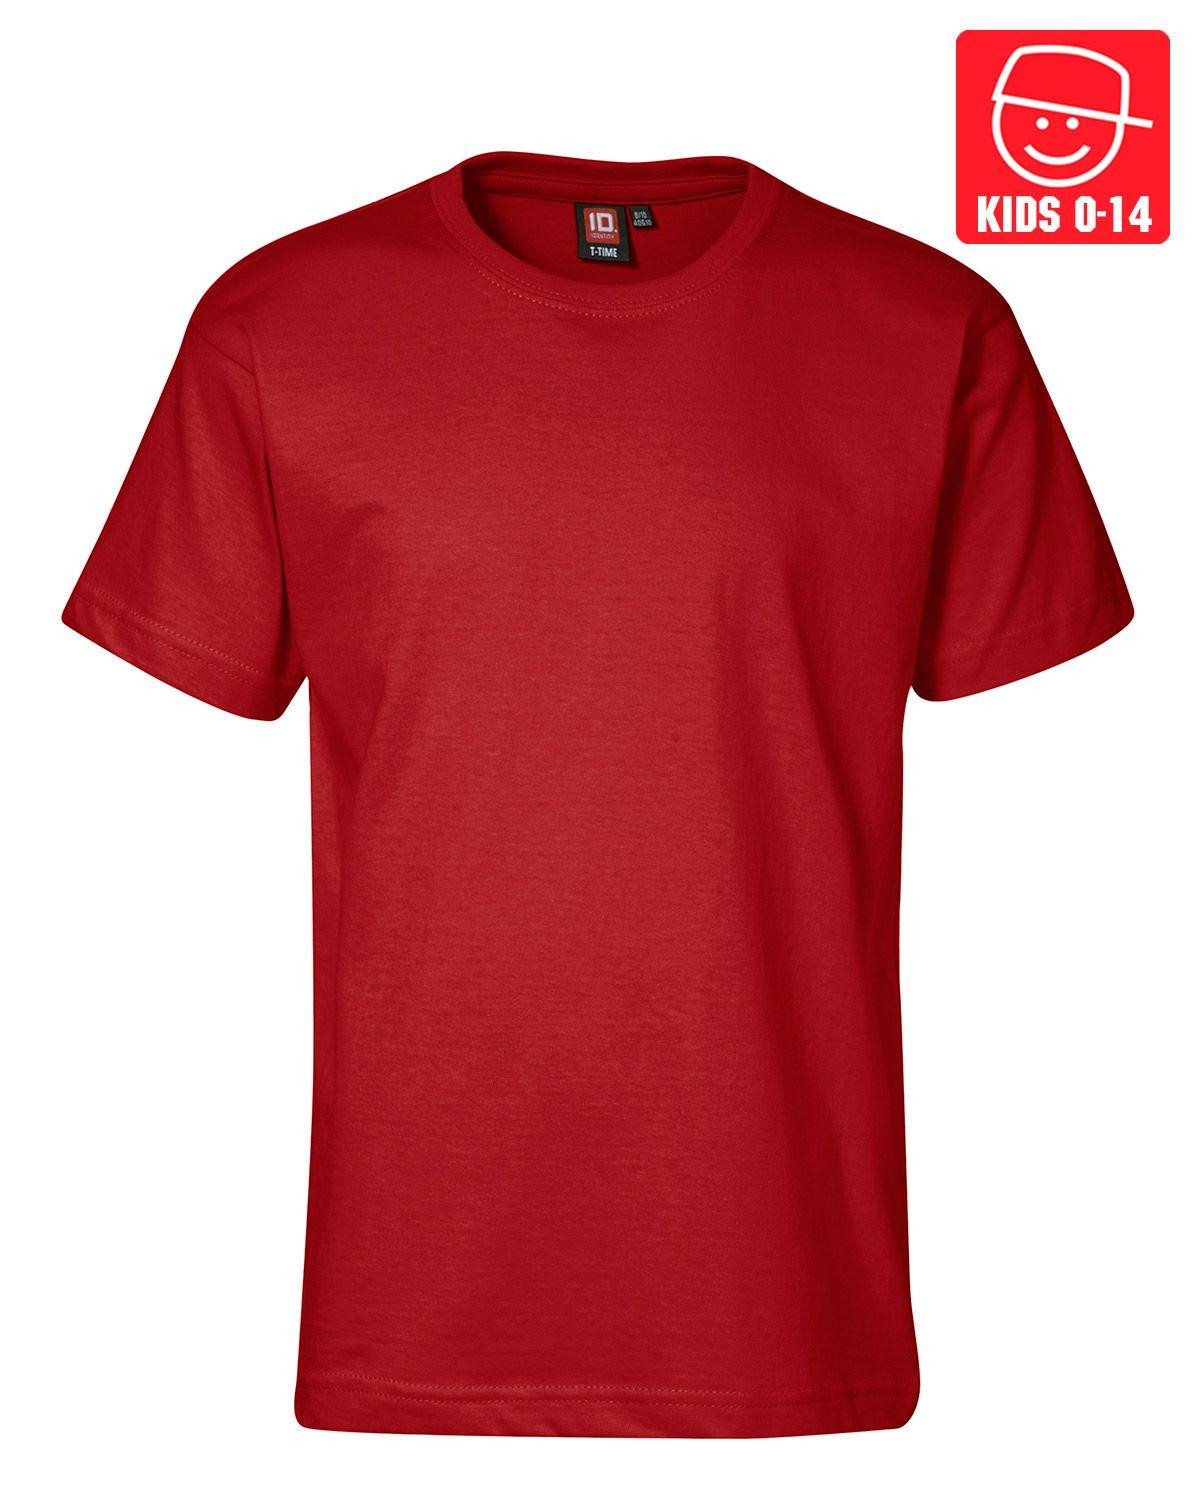 Image of   ID T-TIME T-shirt (Rød, 122)